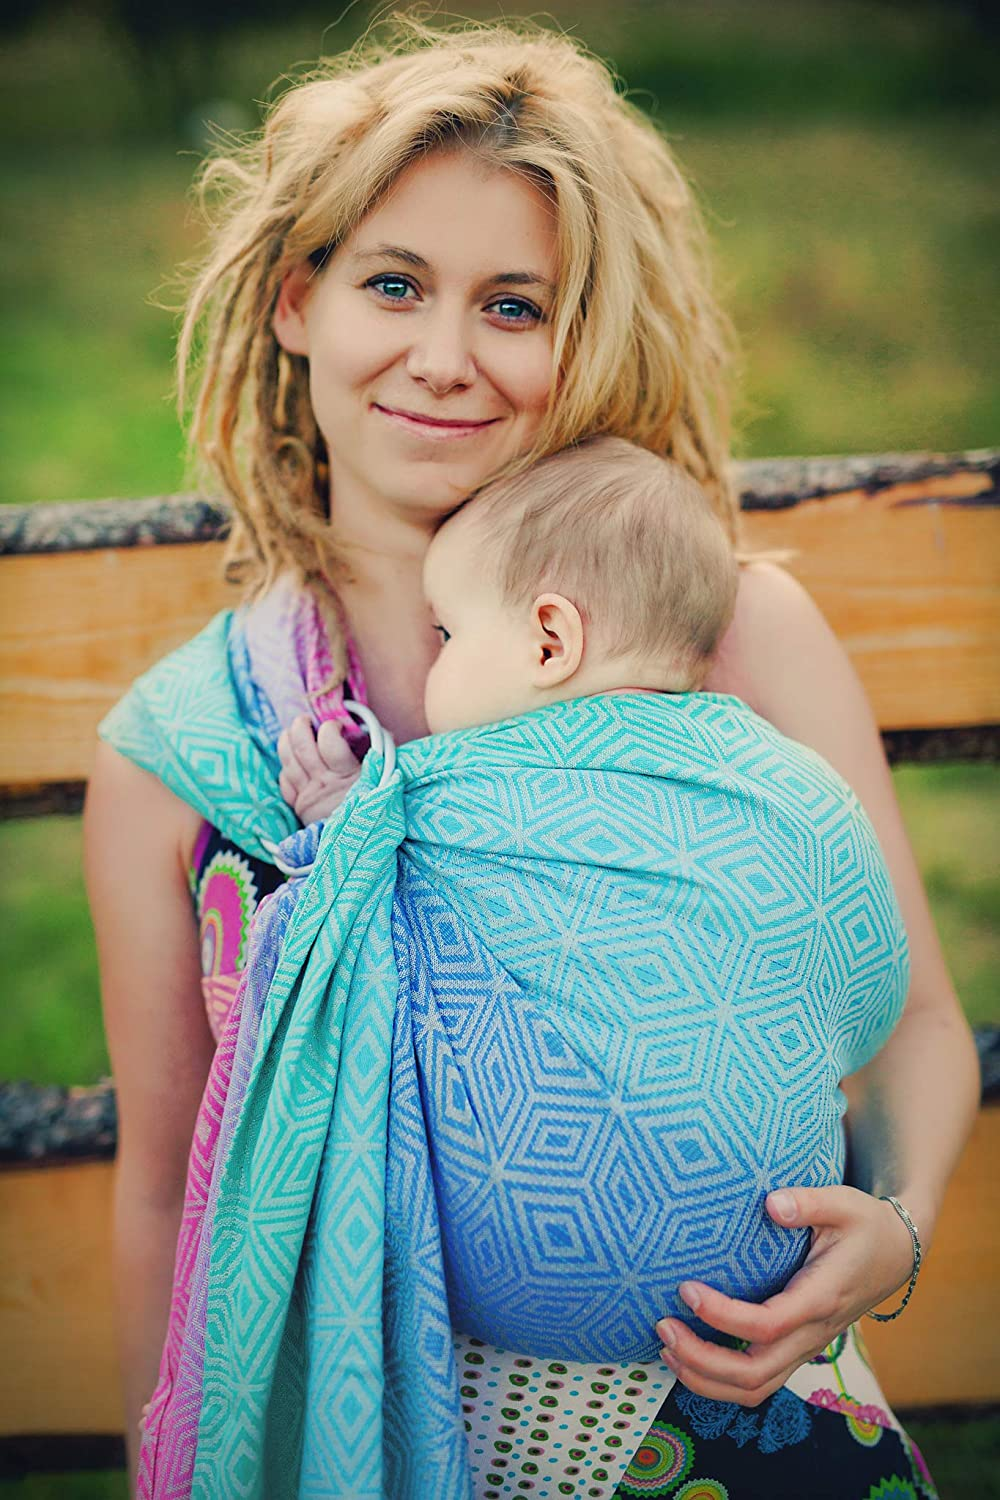 Little Frog 7126 Jacquard Ring Sling Size S Peony Cube Blue 260 g